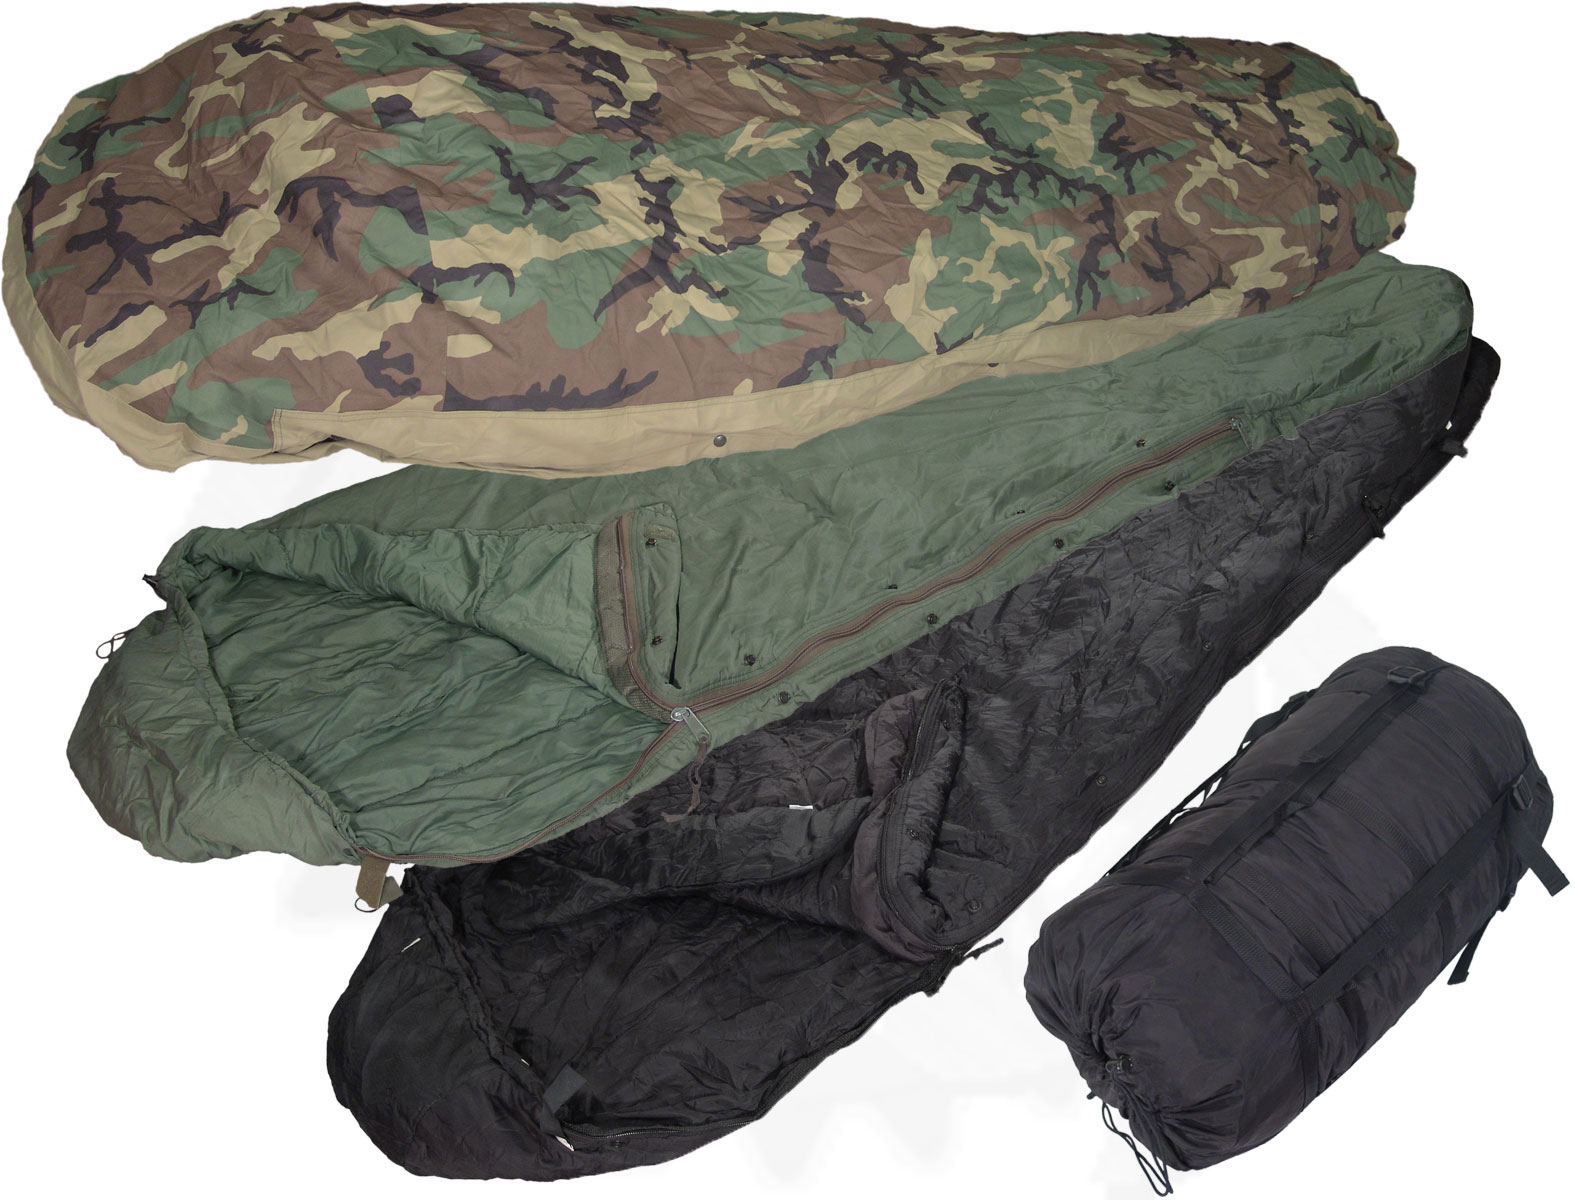 Military Sleep System Review